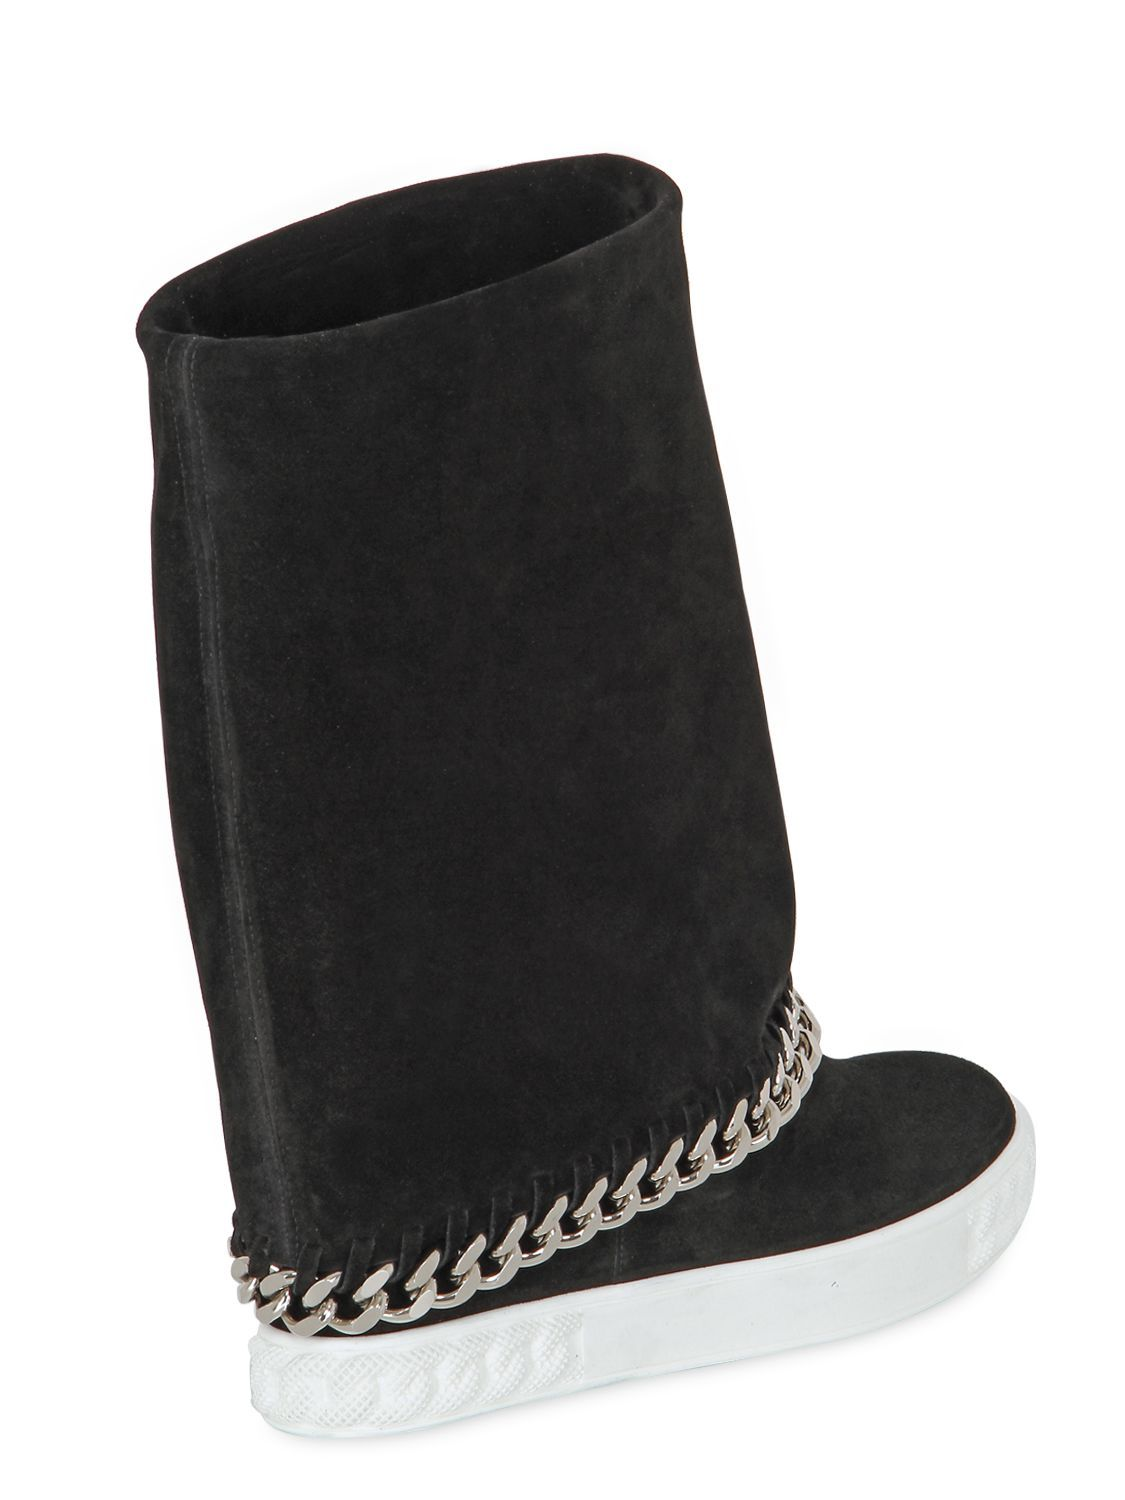 CASADEI - 90MM SUEDE WEDGE SNEAKERS W  CHAIN TRIM - LUISAVIAROMA - LUXURY  SHOPPING WORLDWIDE SHIPPING - FLORENCE 9b7286d990d